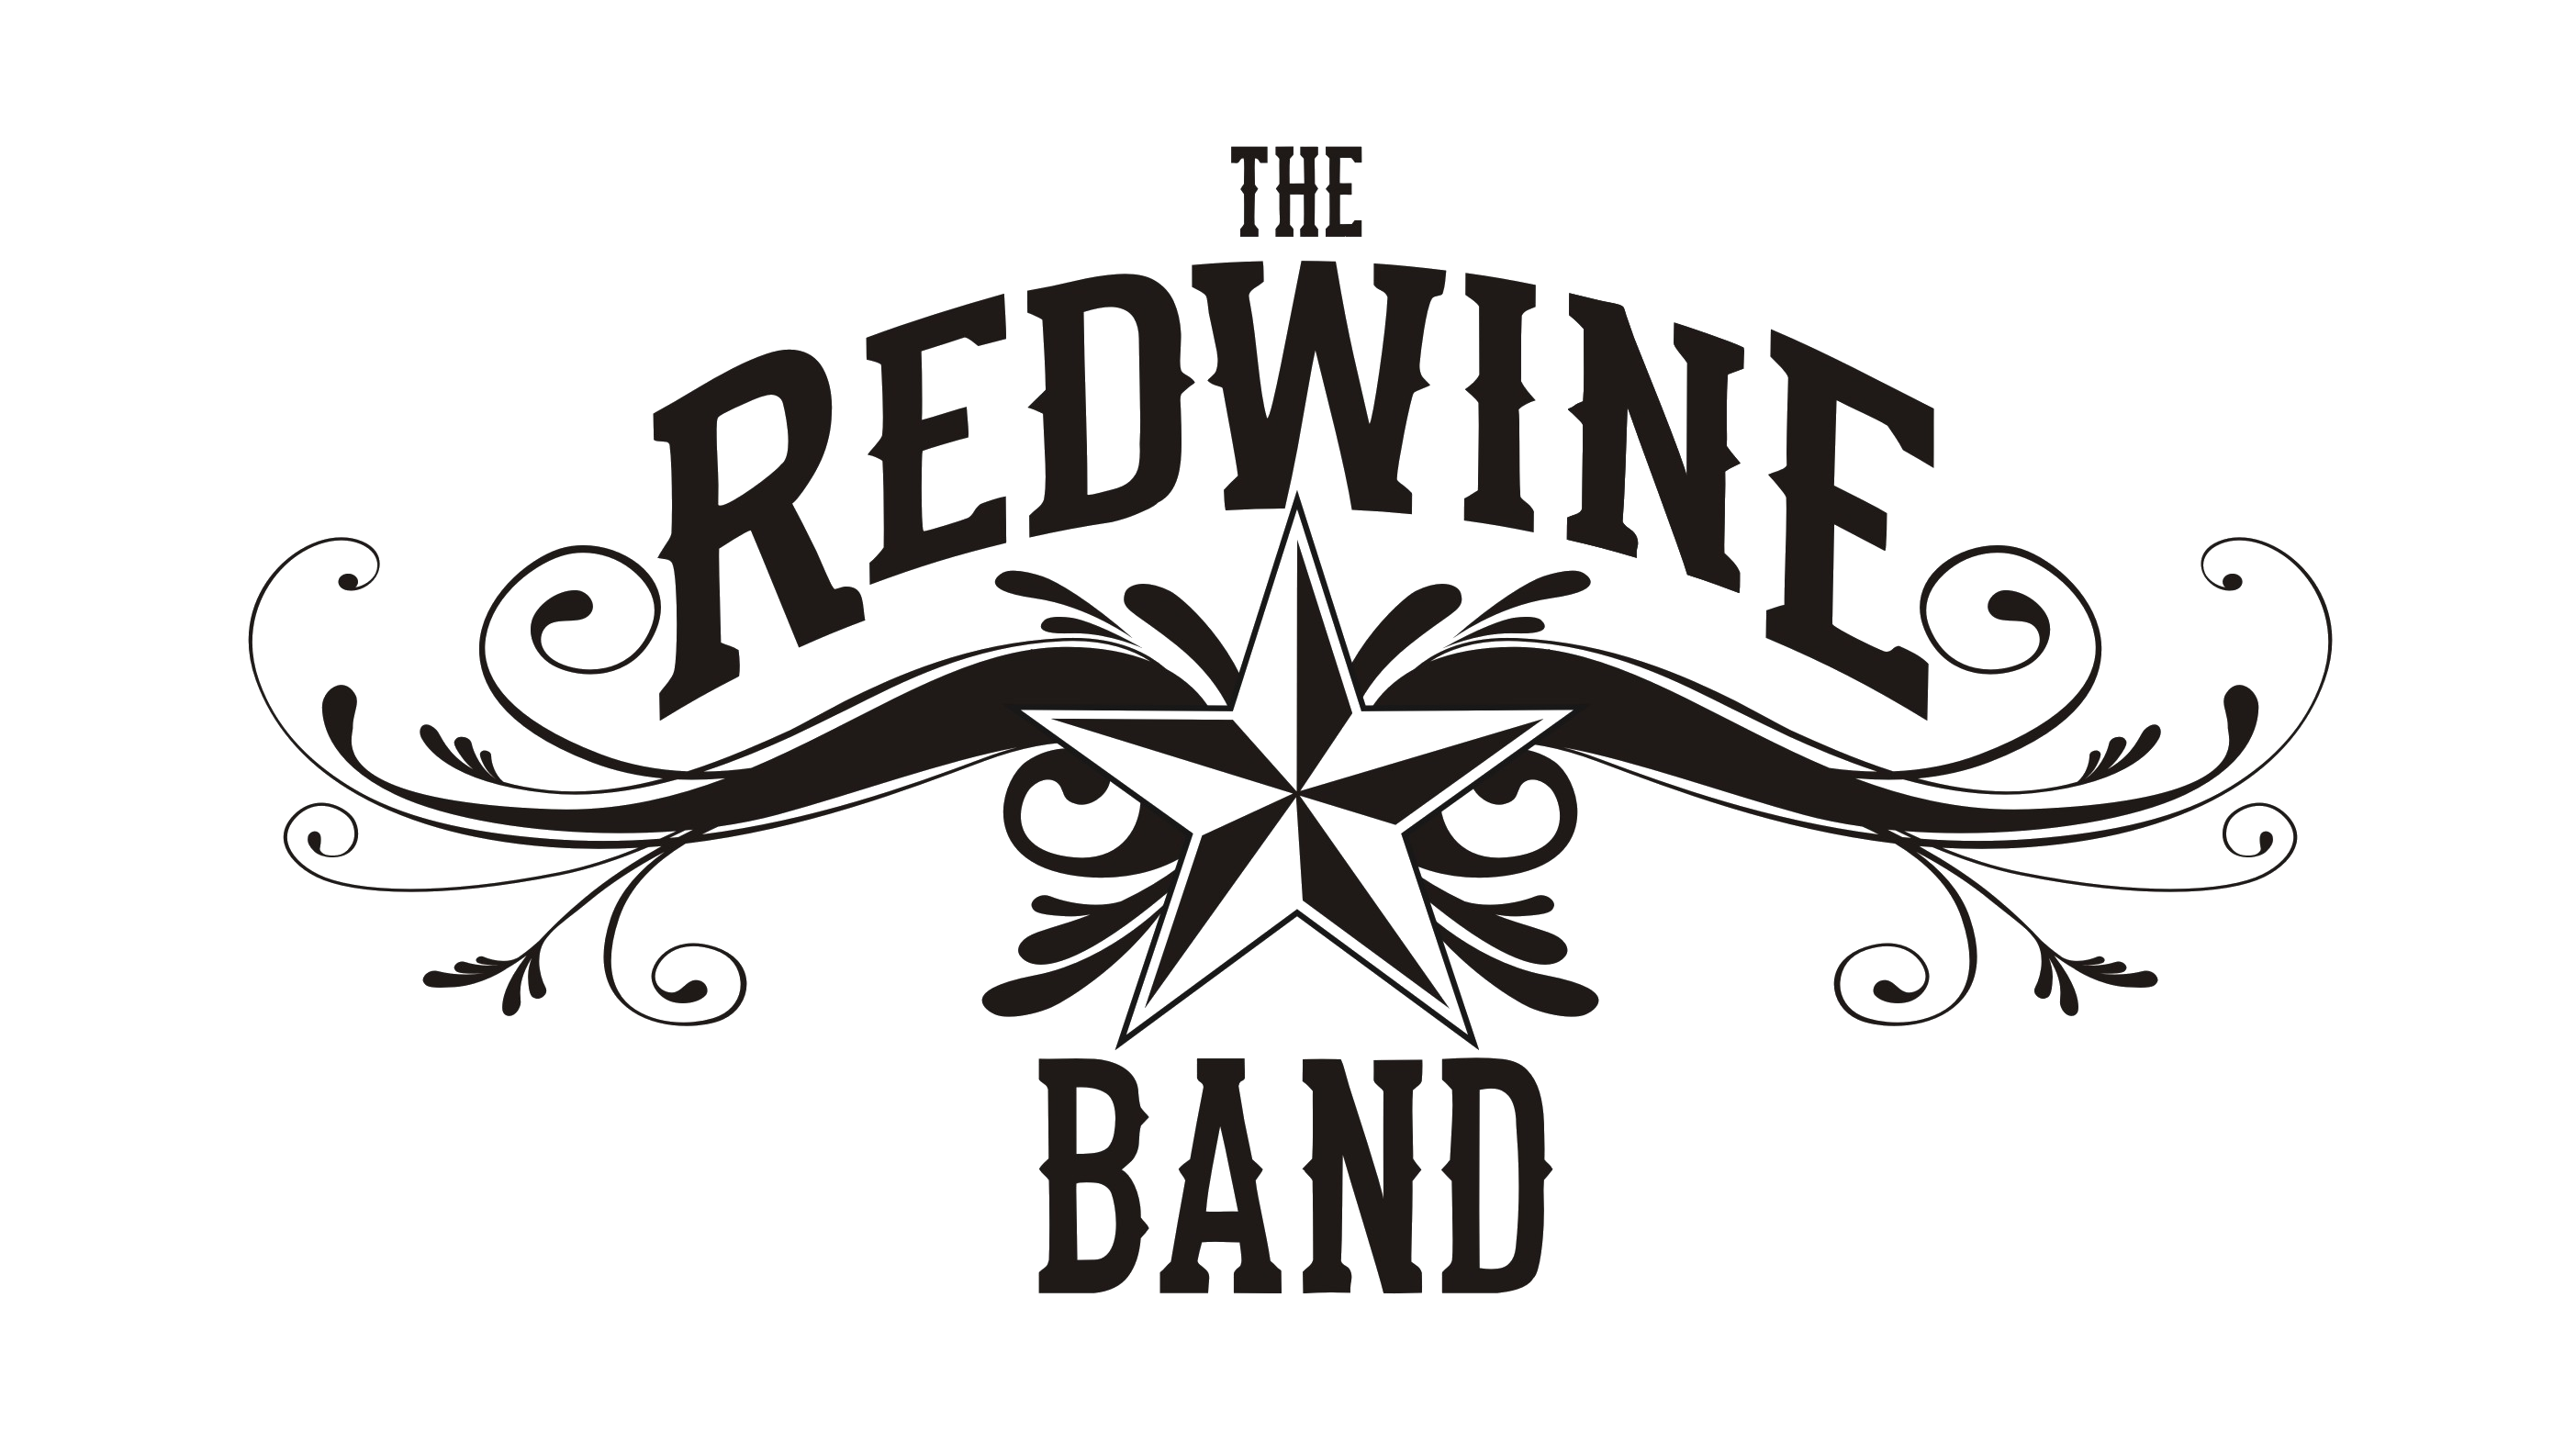 Drawing bands favorite. The redwine band